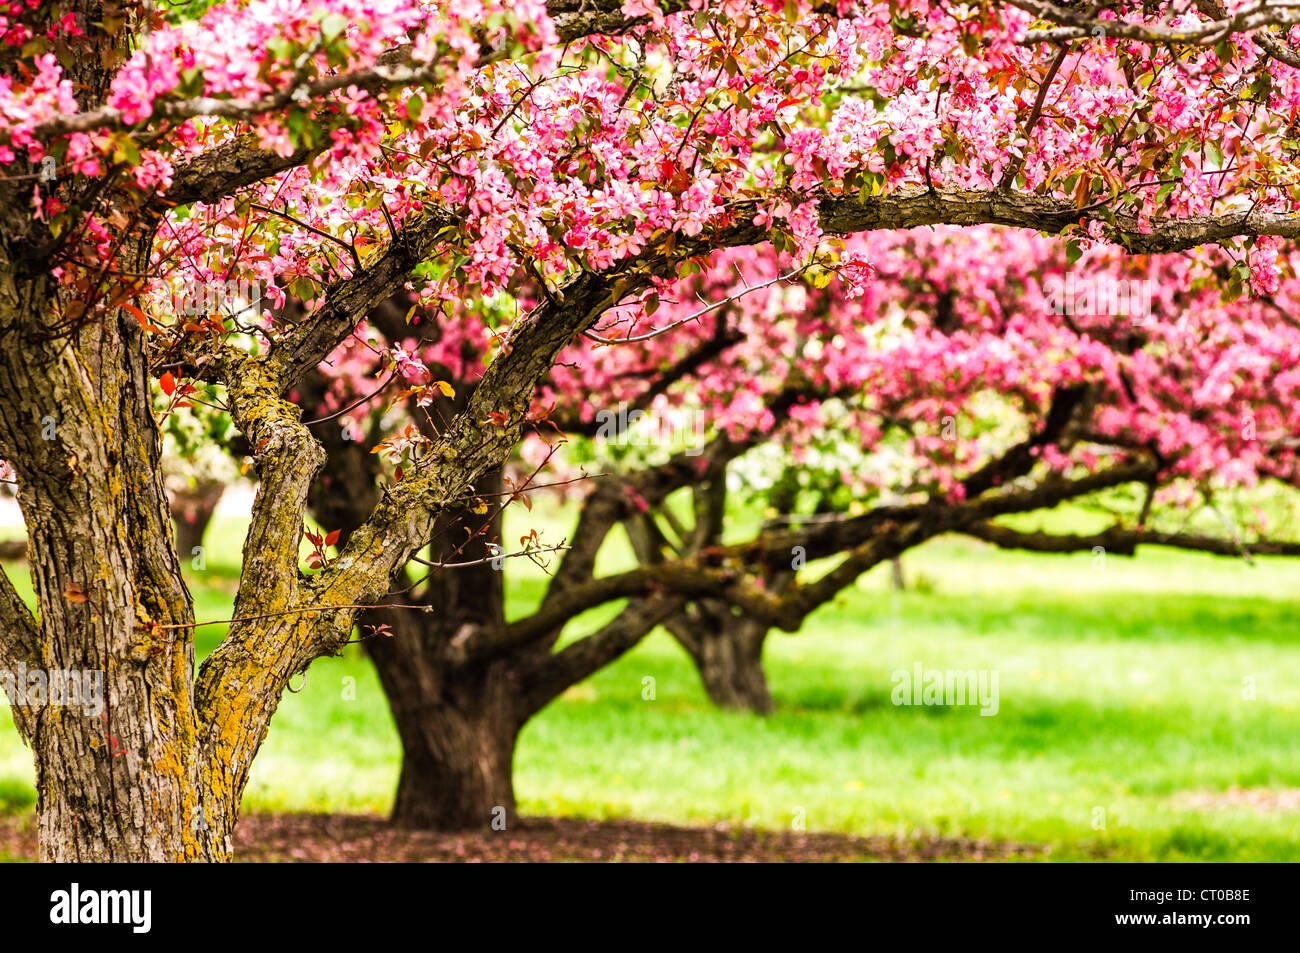 Apple trees in bloom at the University of Minnesota Landscape Arboretum in spring. Stock Photo